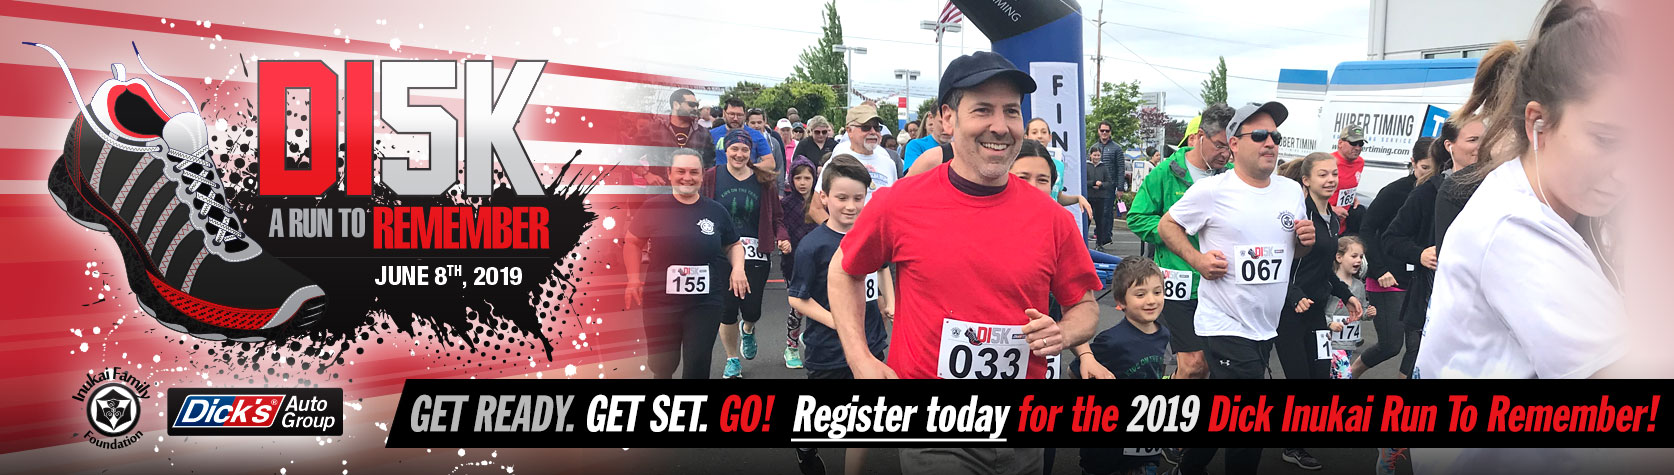 Register for the 2019 DI5K: A Run To Remember June 8th, 2019